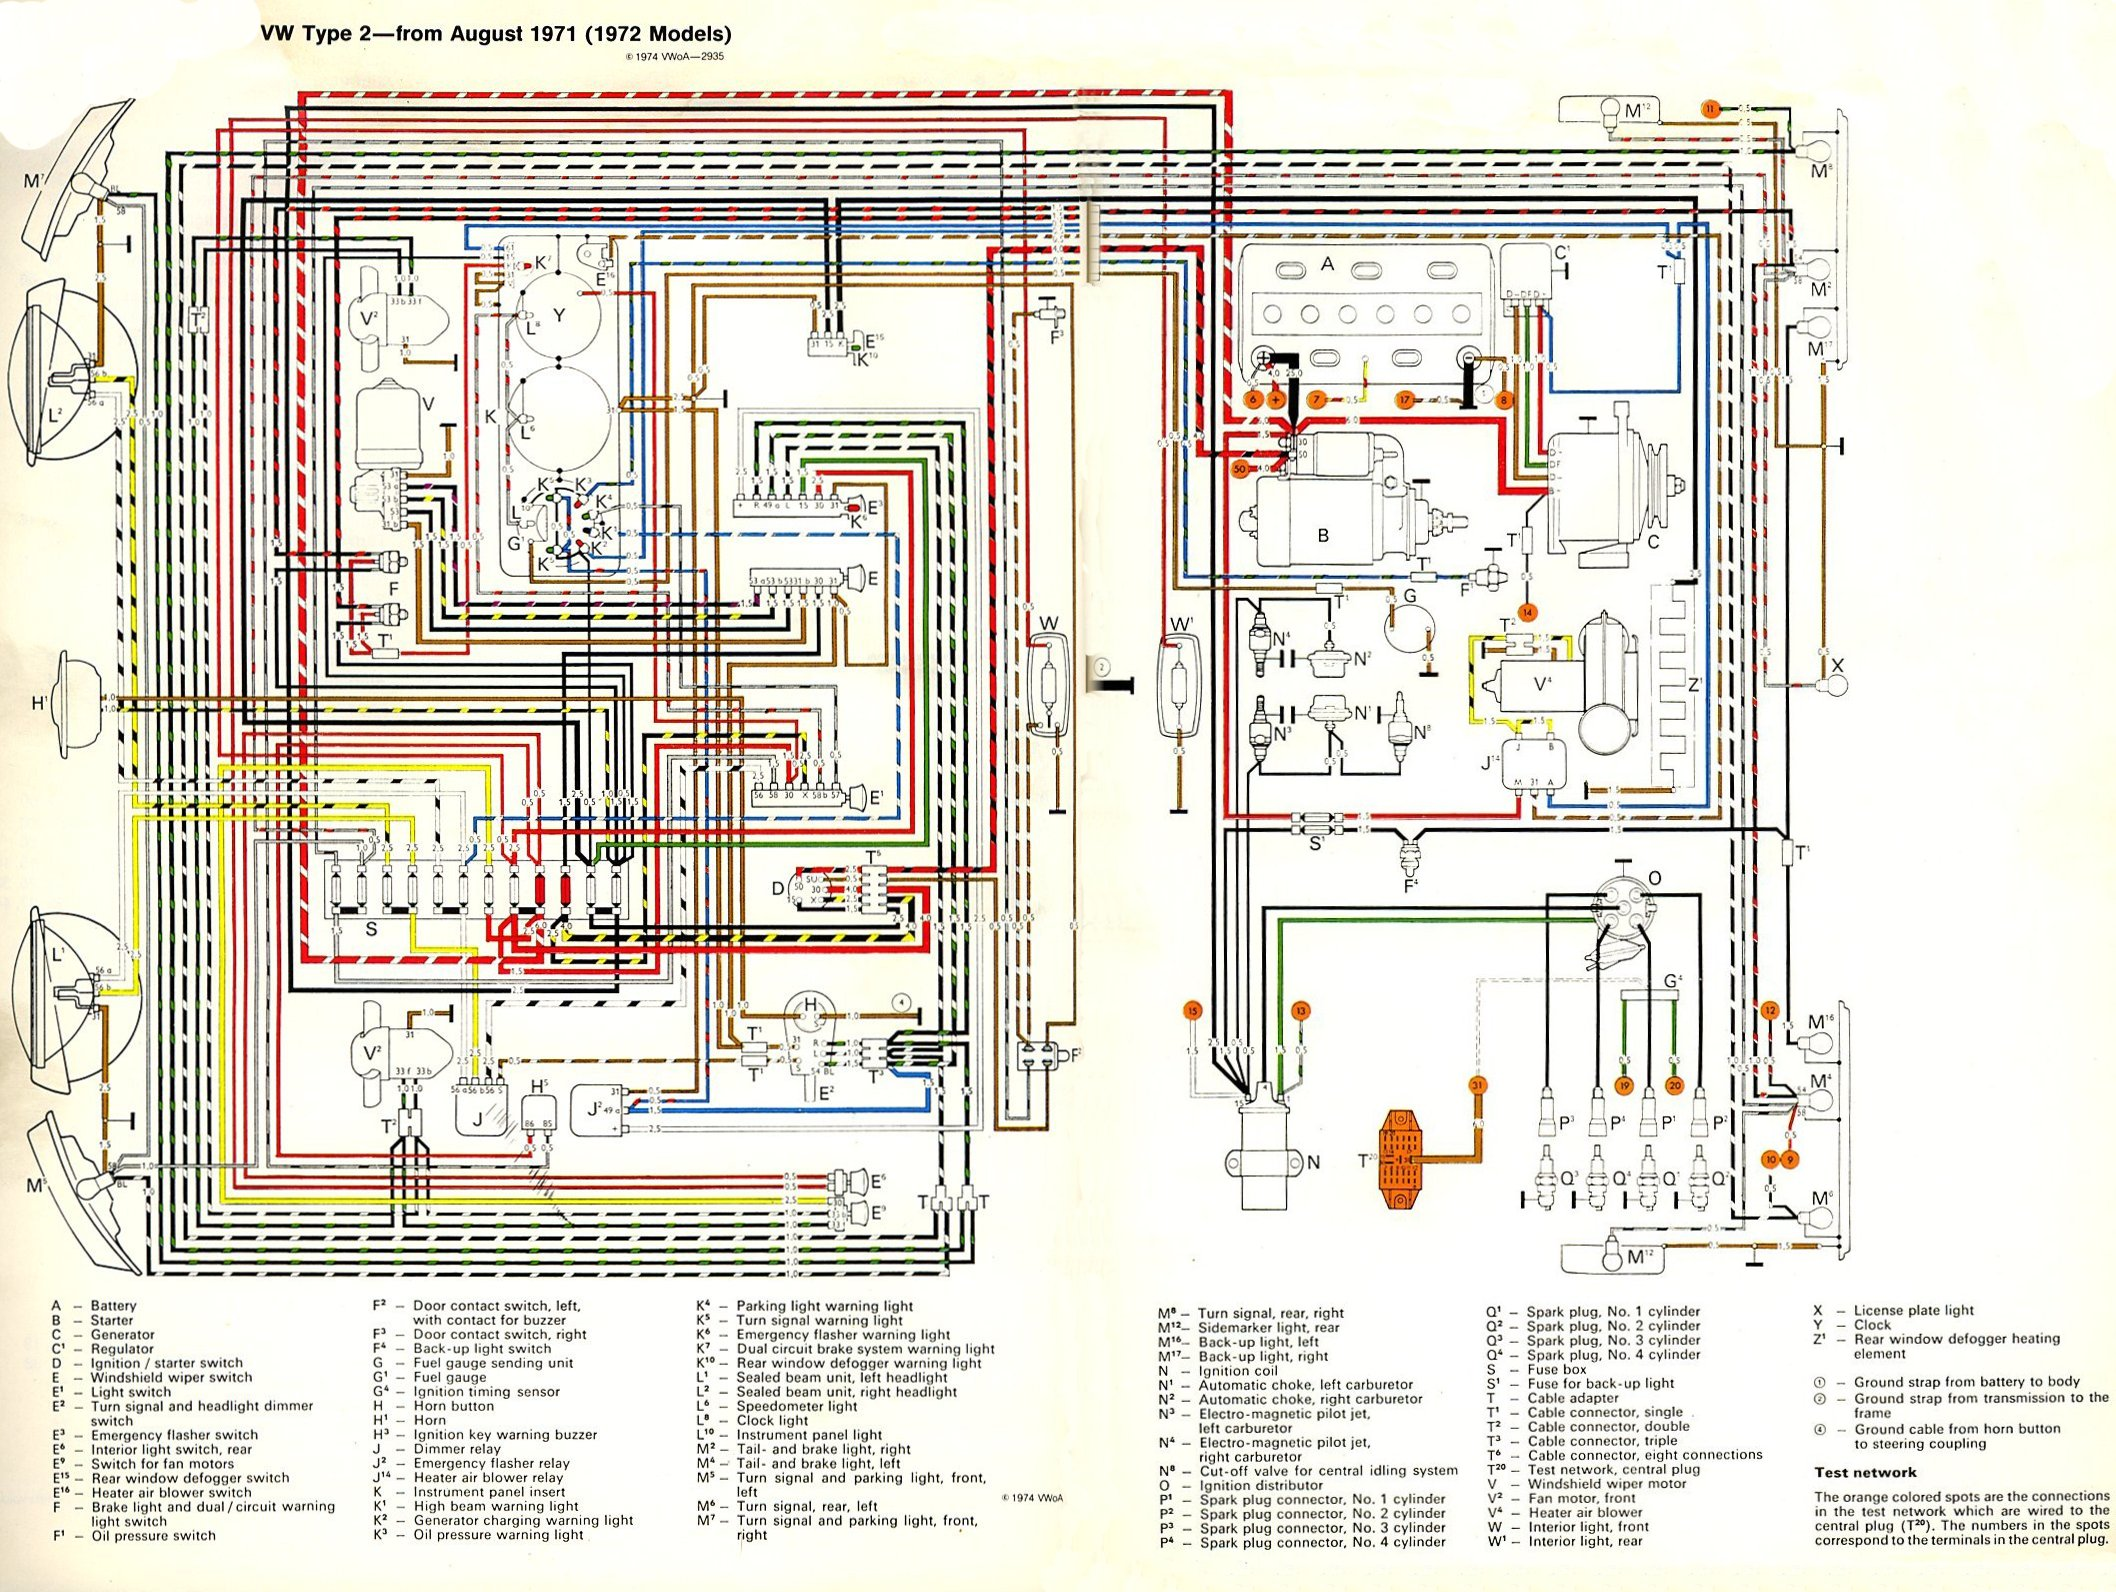 bus_1972_wiring wiring diagram for 1971 vw bus readingrat net 1971 vw bus wiring diagram at crackthecode.co